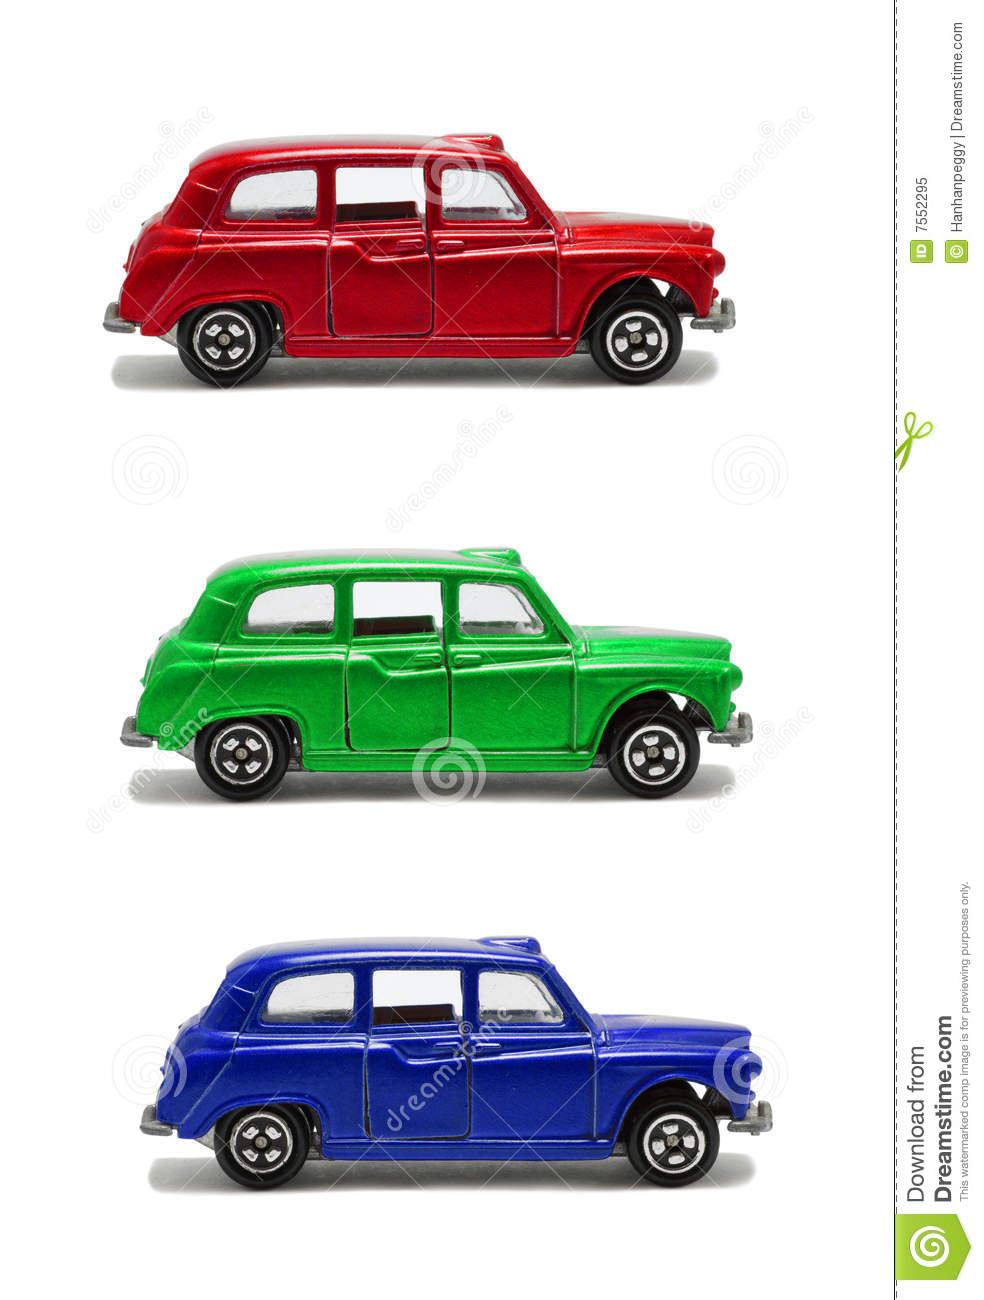 red green and blue toy cars royalty free stock photo image 7552295. Black Bedroom Furniture Sets. Home Design Ideas